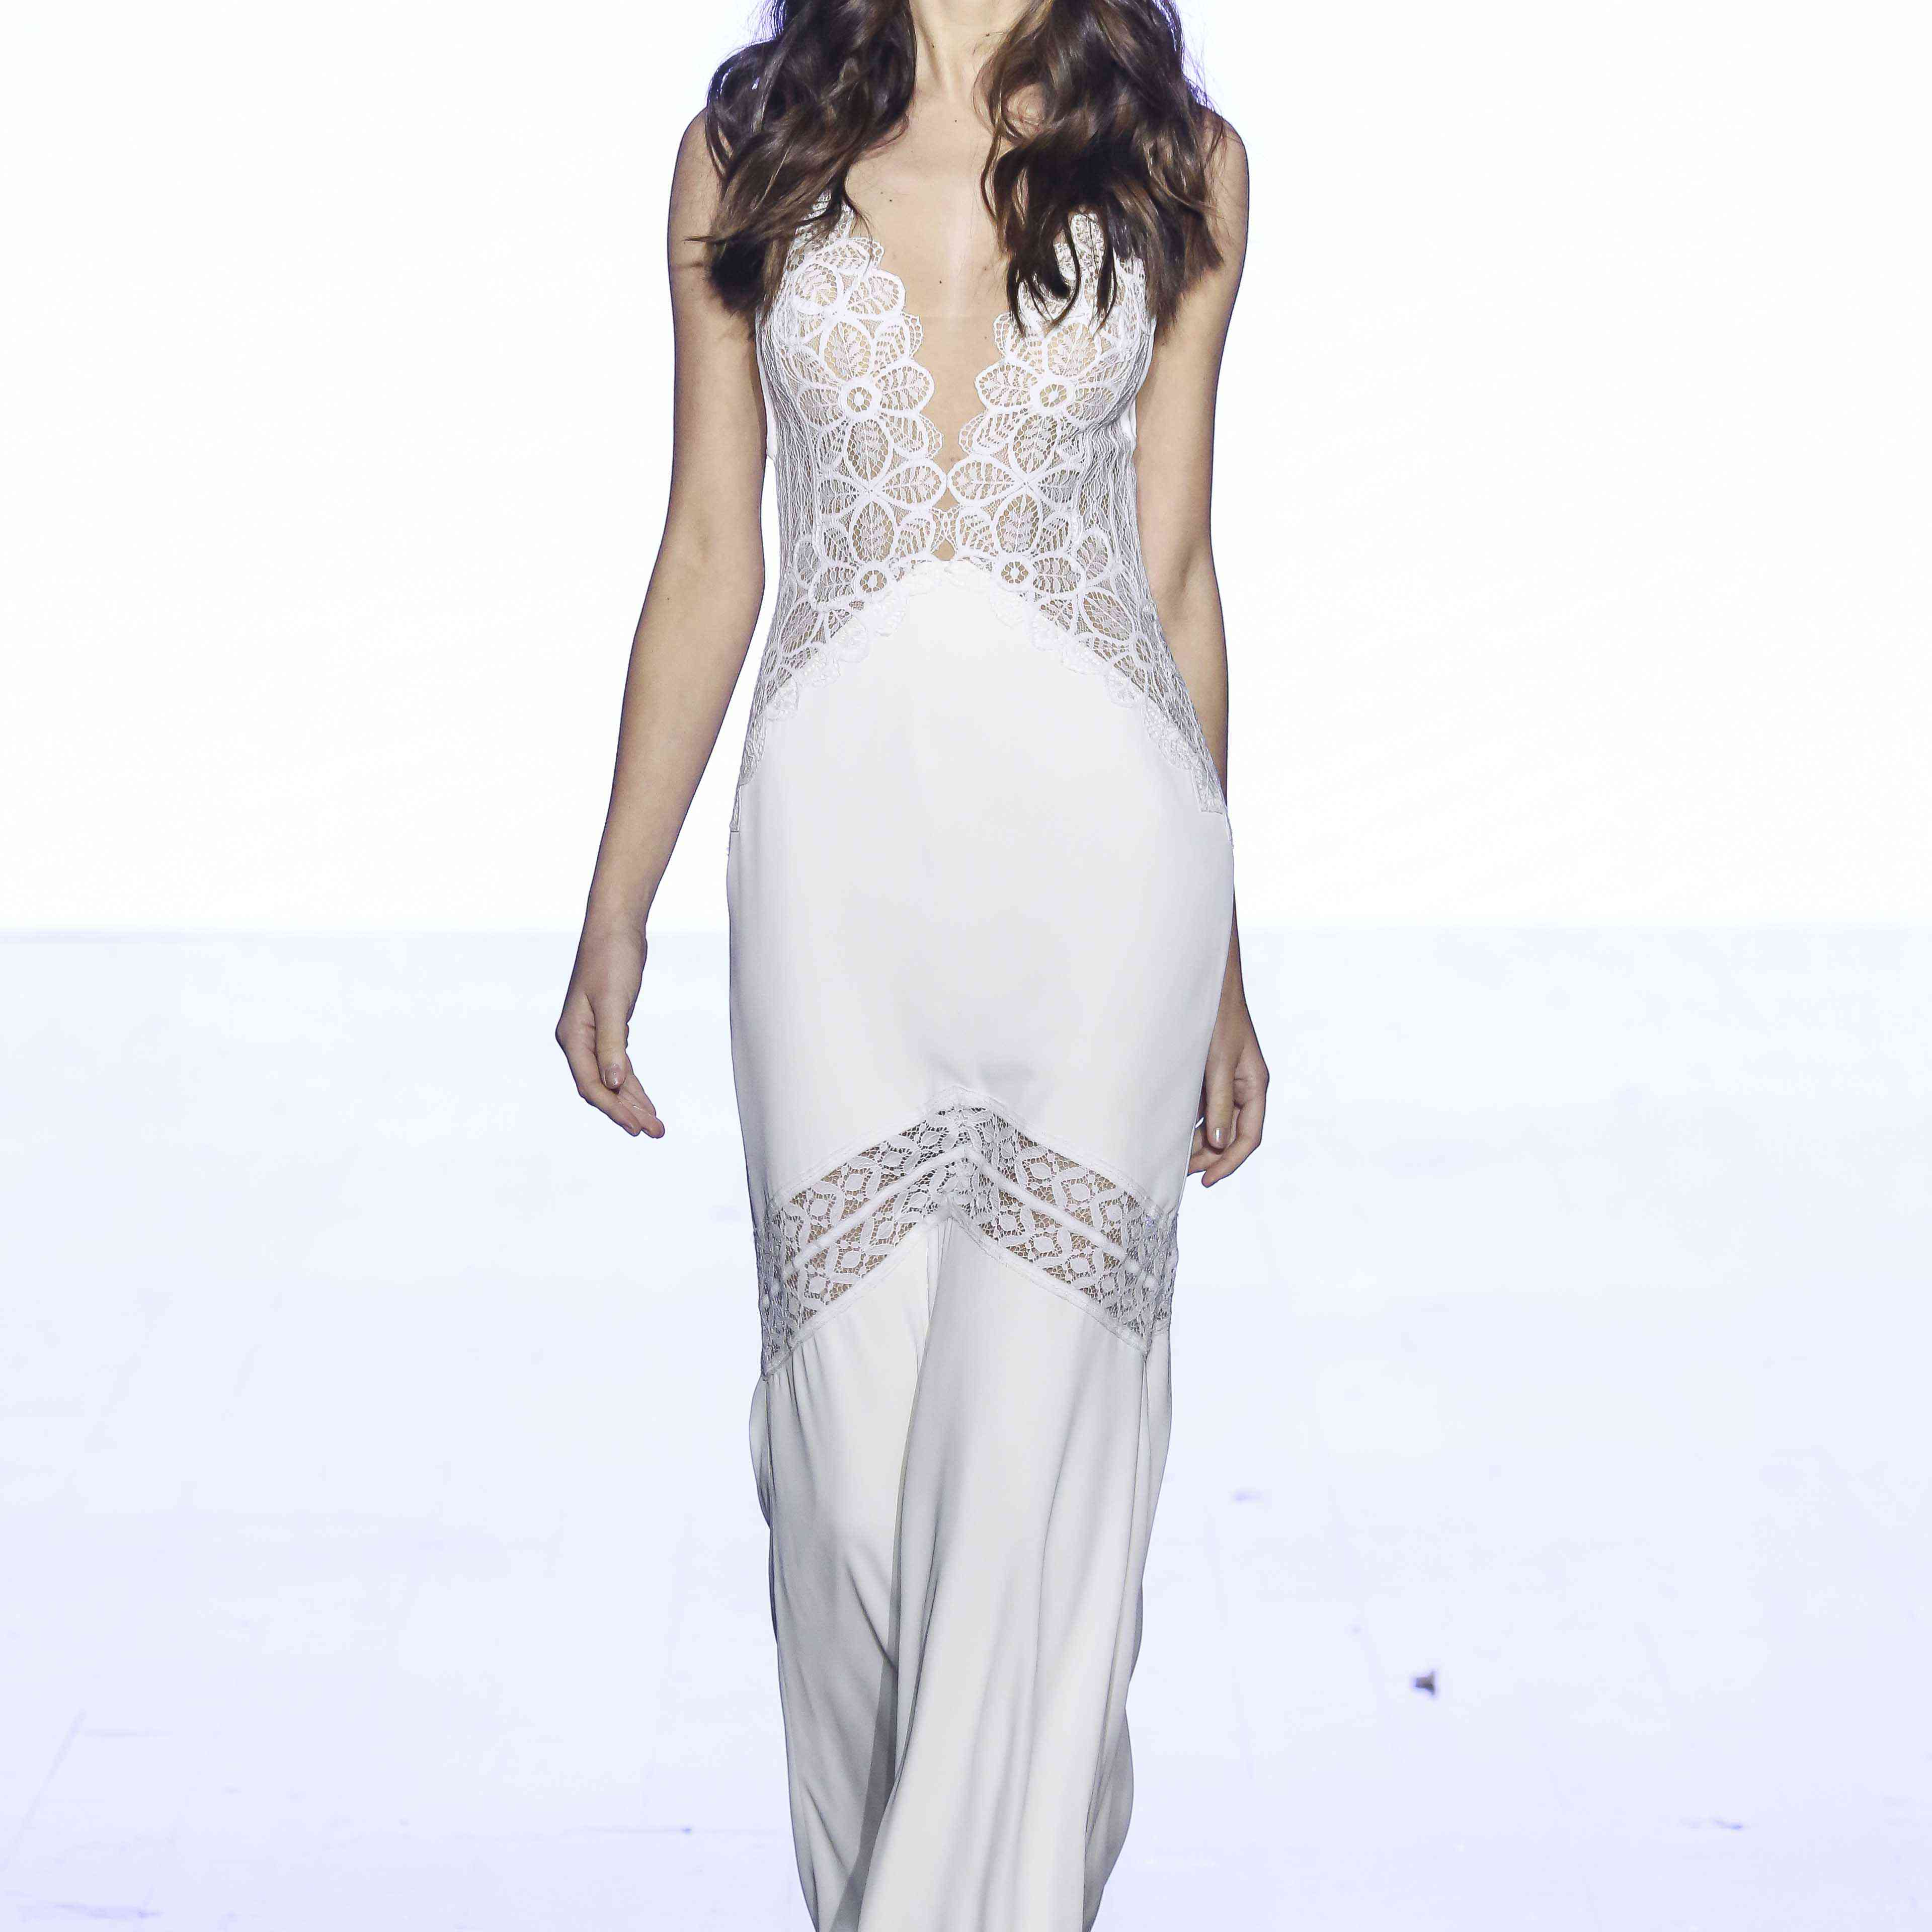 Model in a lace and georgette sheath gown with a plunging illusion bodice